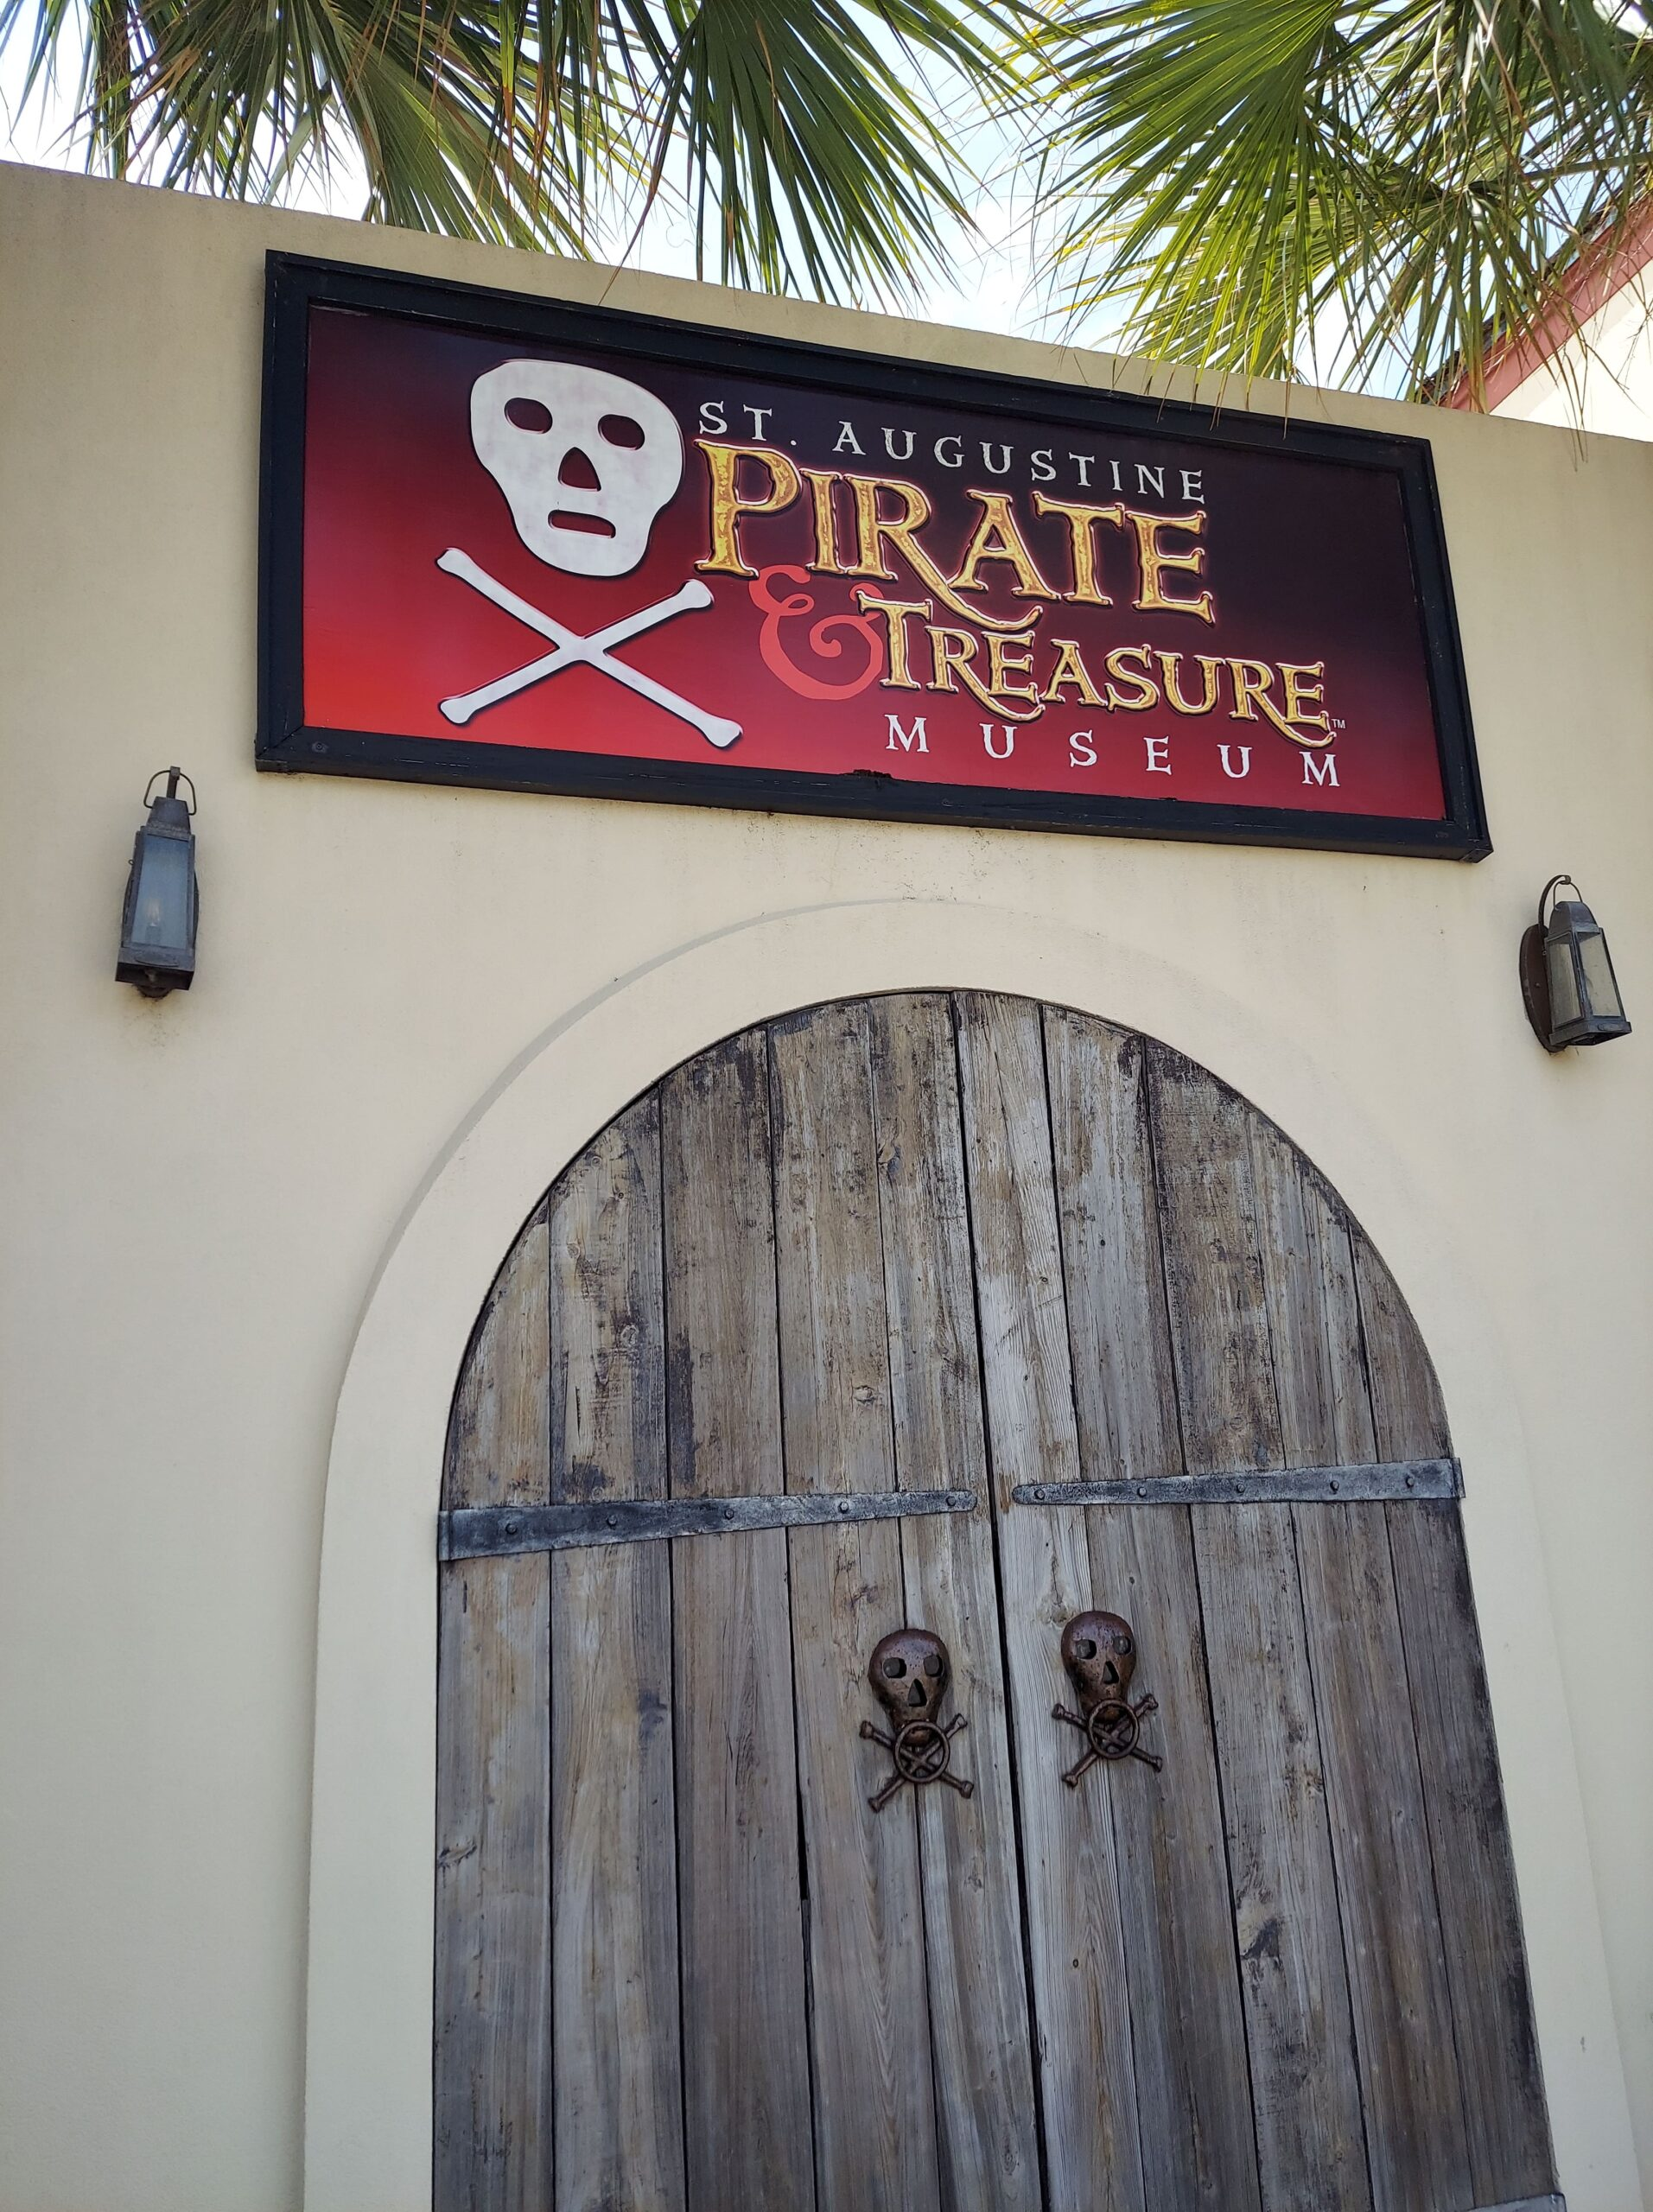 The St. Augustine Pirate and Treasure Museum is one of the most fun things to do with kids in St. Augustine.